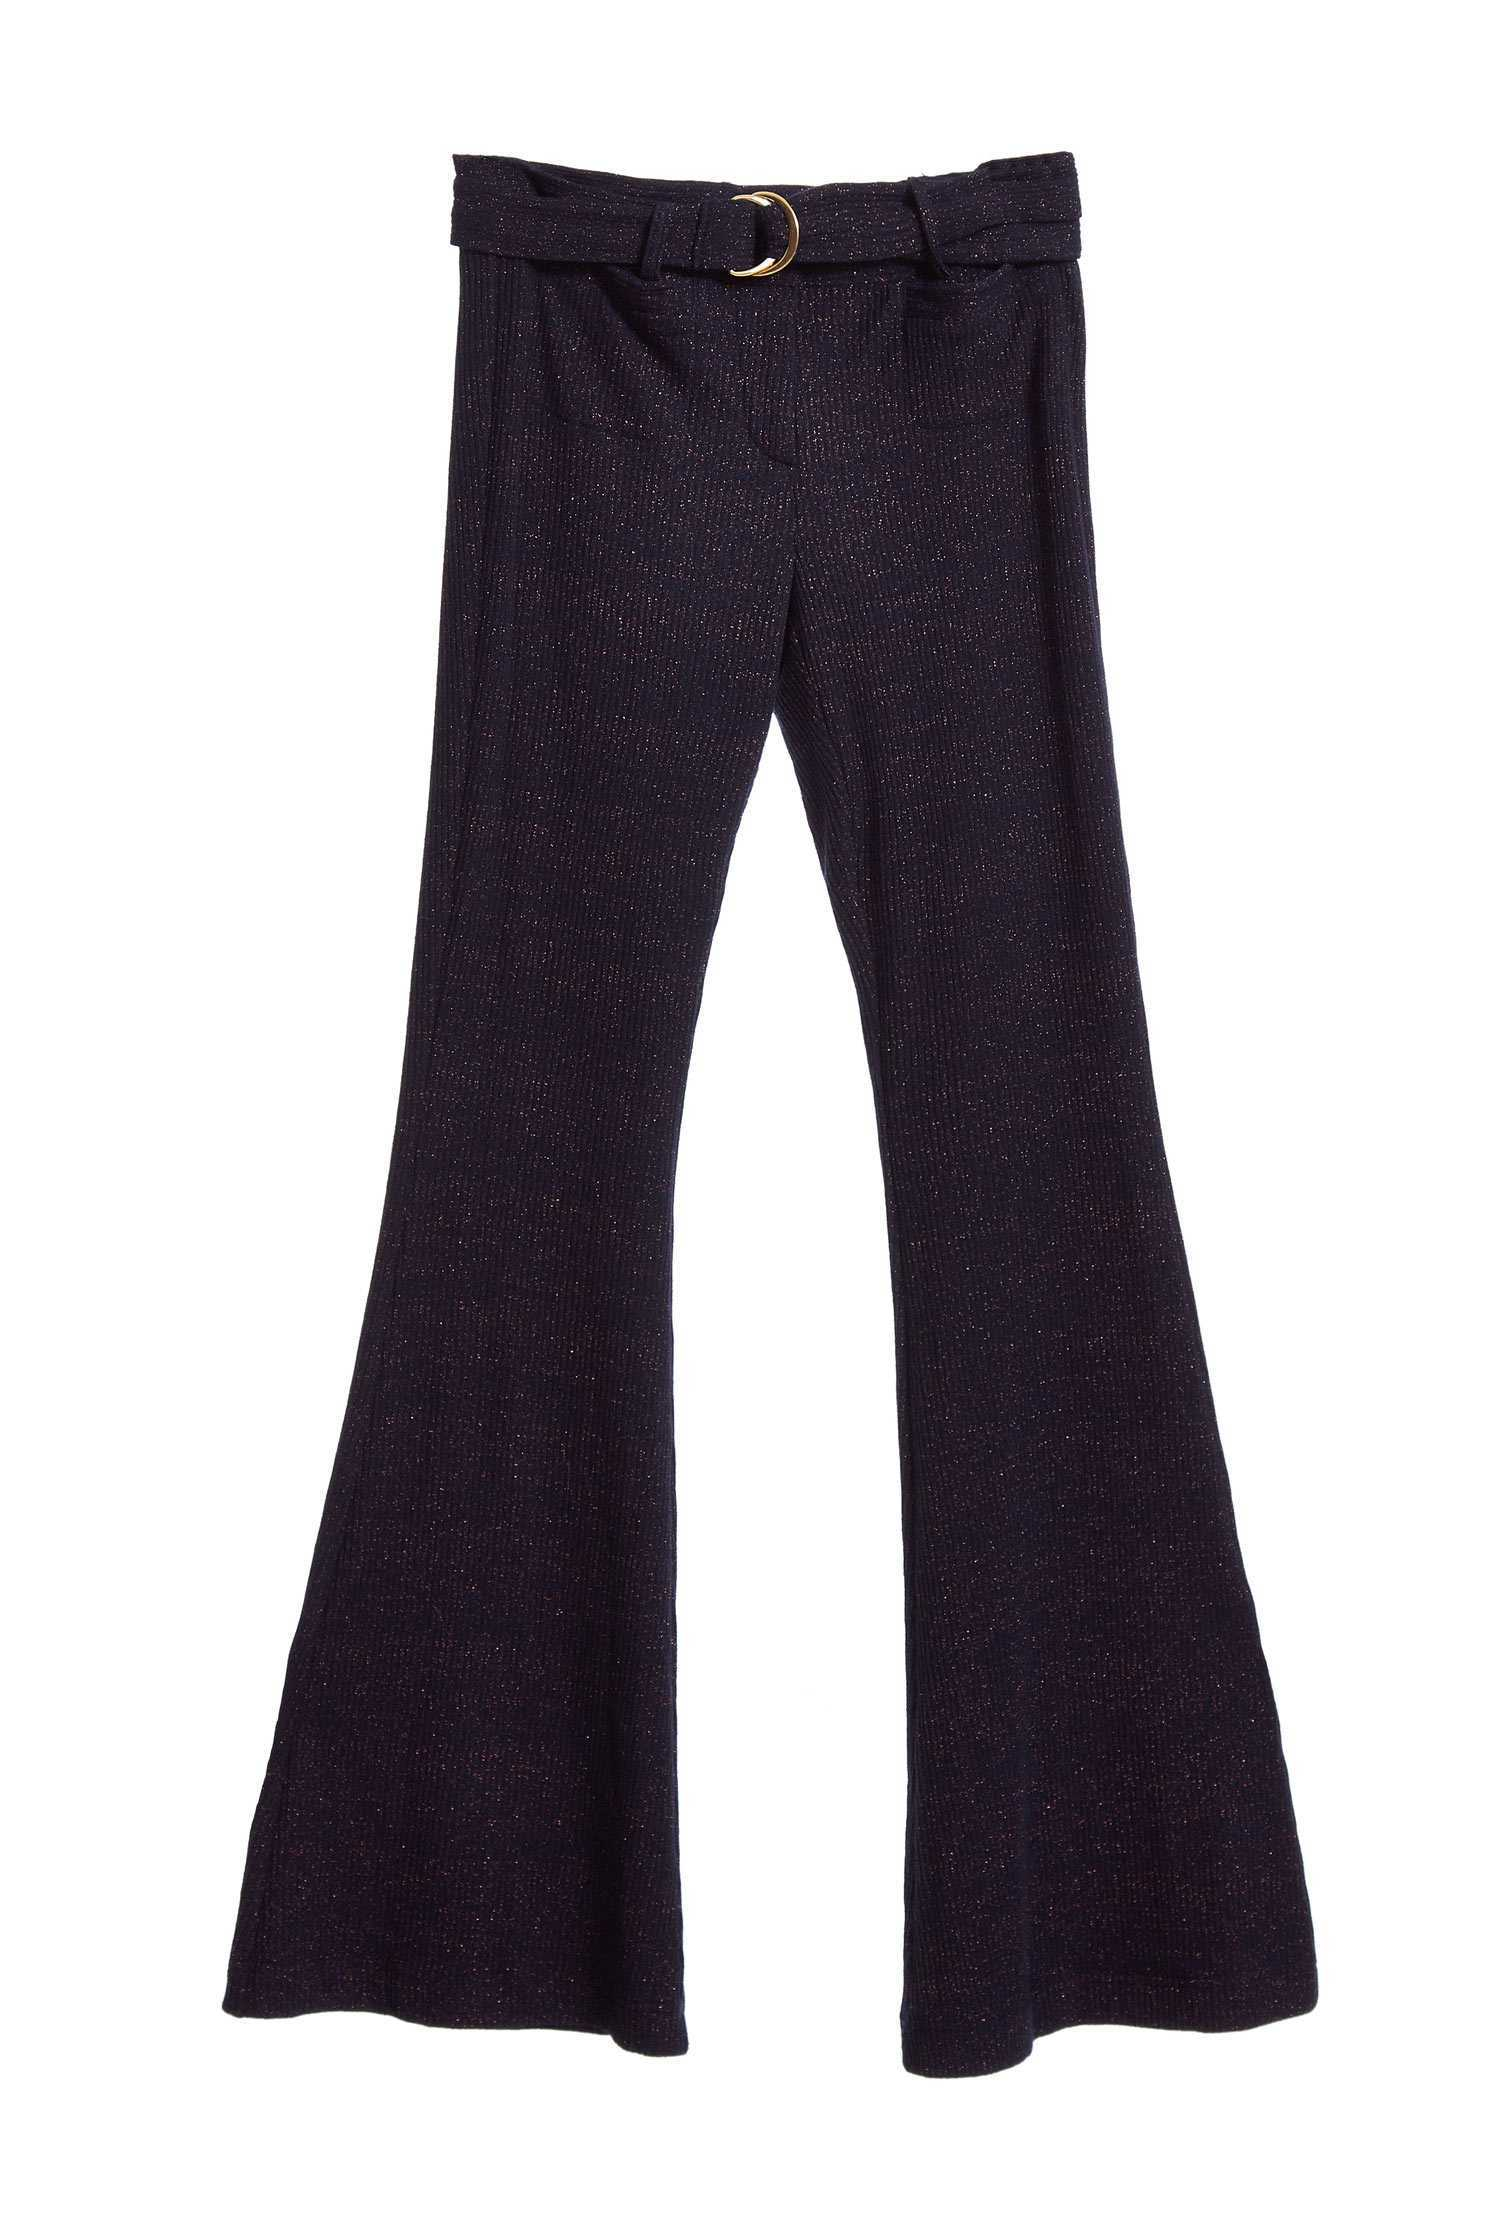 Classic bell-bottoms,bellbottomjeans,pants,pants,thinpants